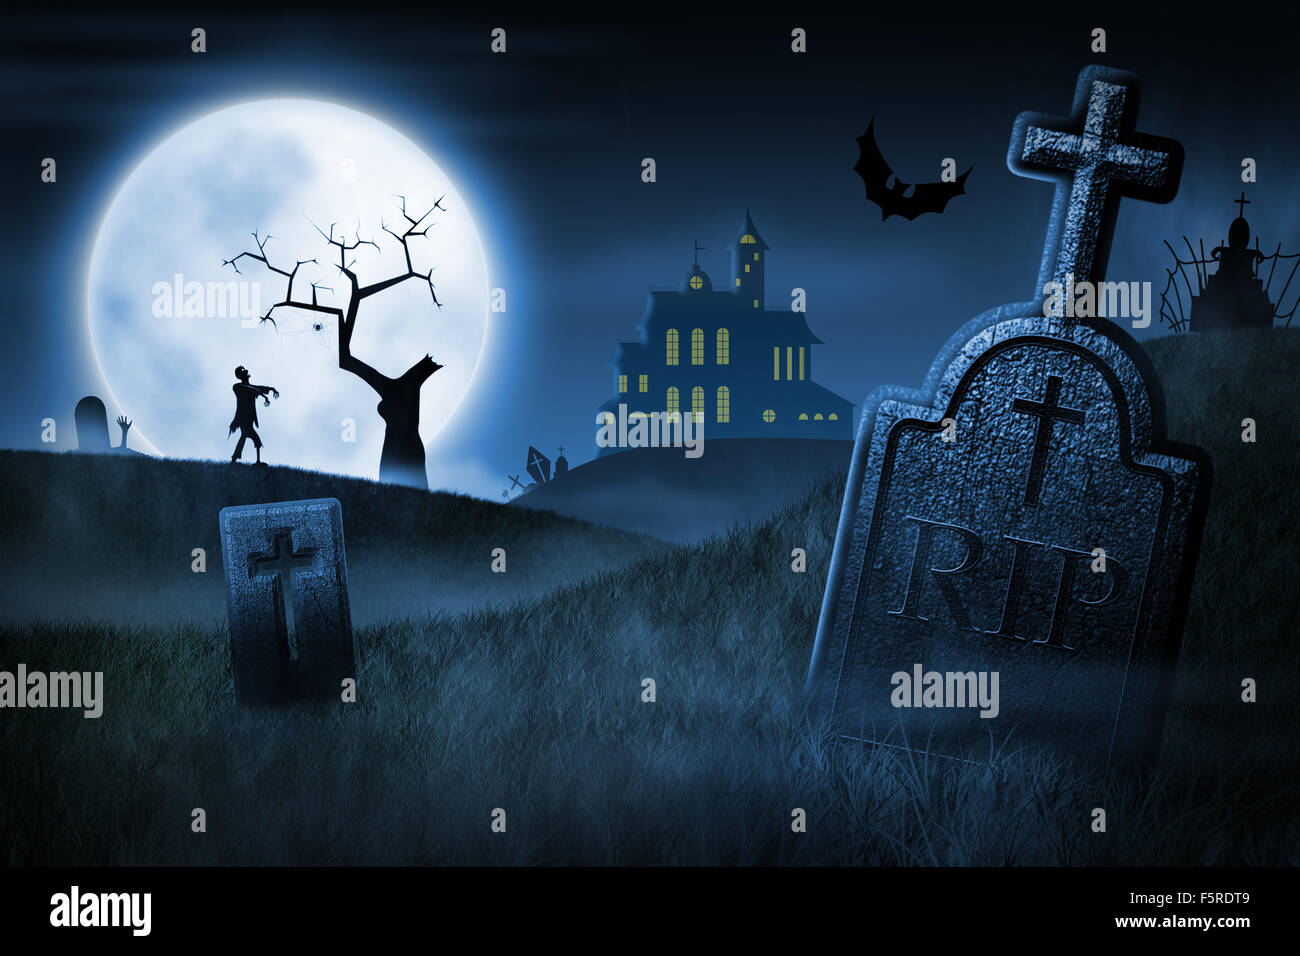 Halloween Spooky Pictures.Spooky Halloween Night Foggy Cemetery And Haunted House On